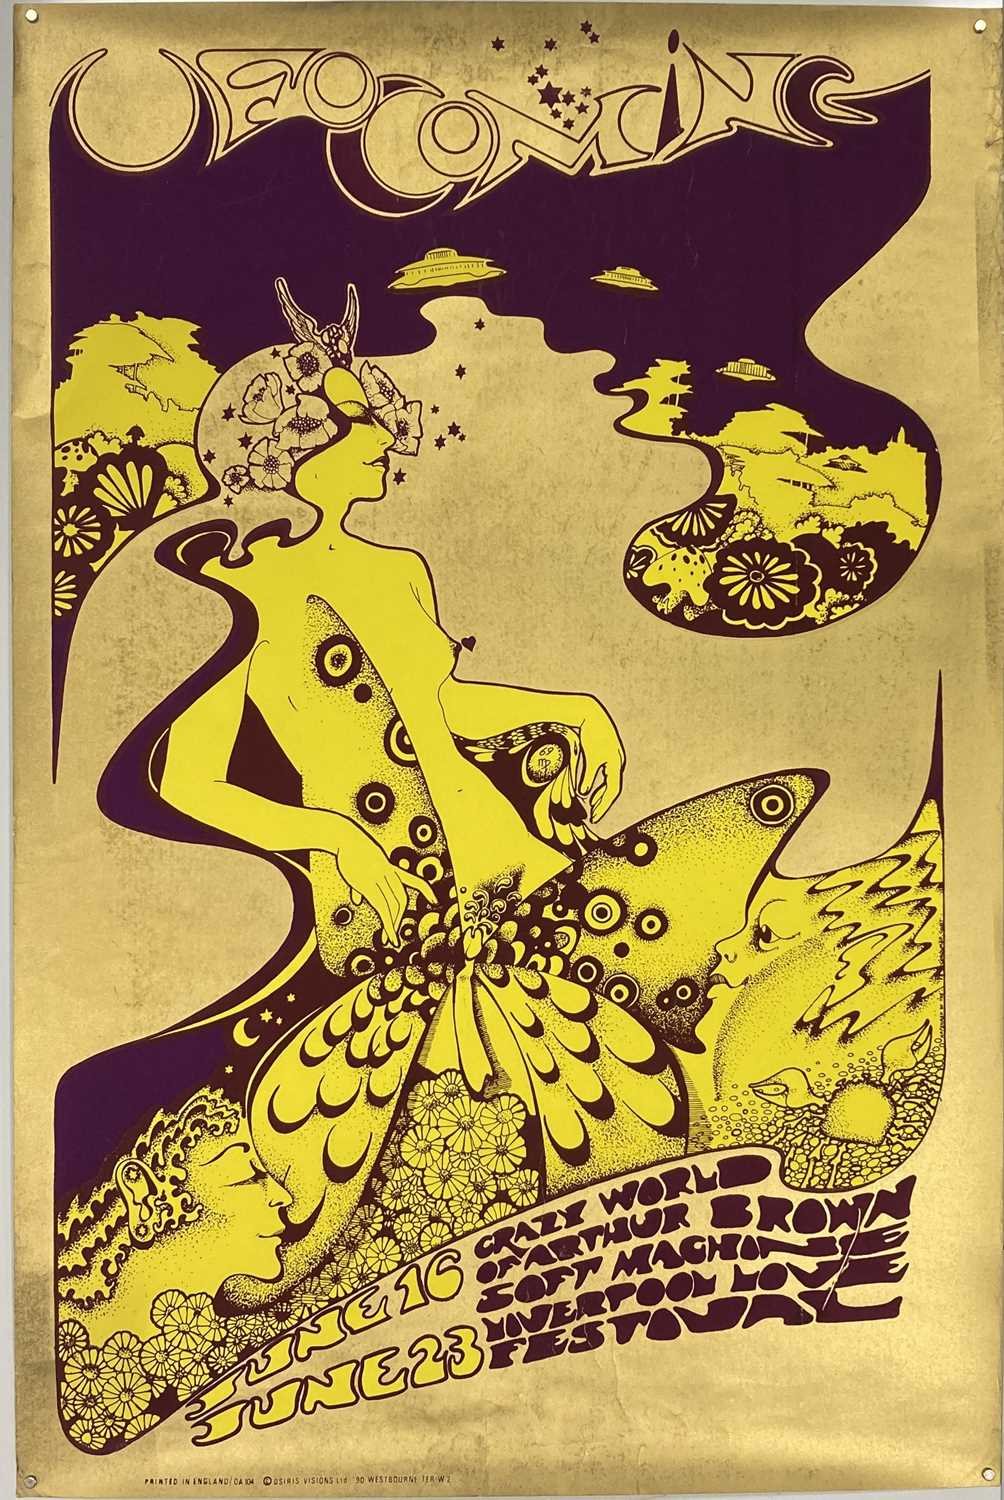 Lot 190 - HAPSHASH AND THE COLOURED COAT POSTER - UFO COMING - ARTHUR BROWN / SOFT MACHINE